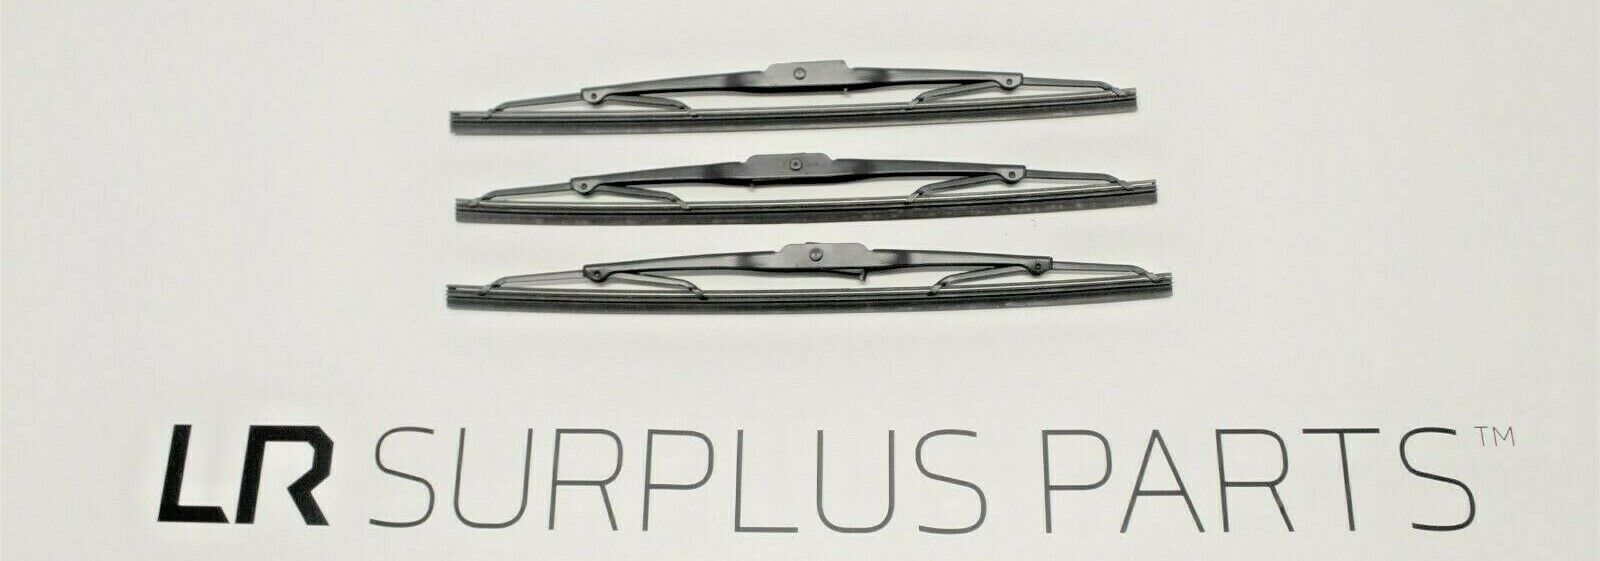 Land Rover Defender Wiper Blades x3's featured image